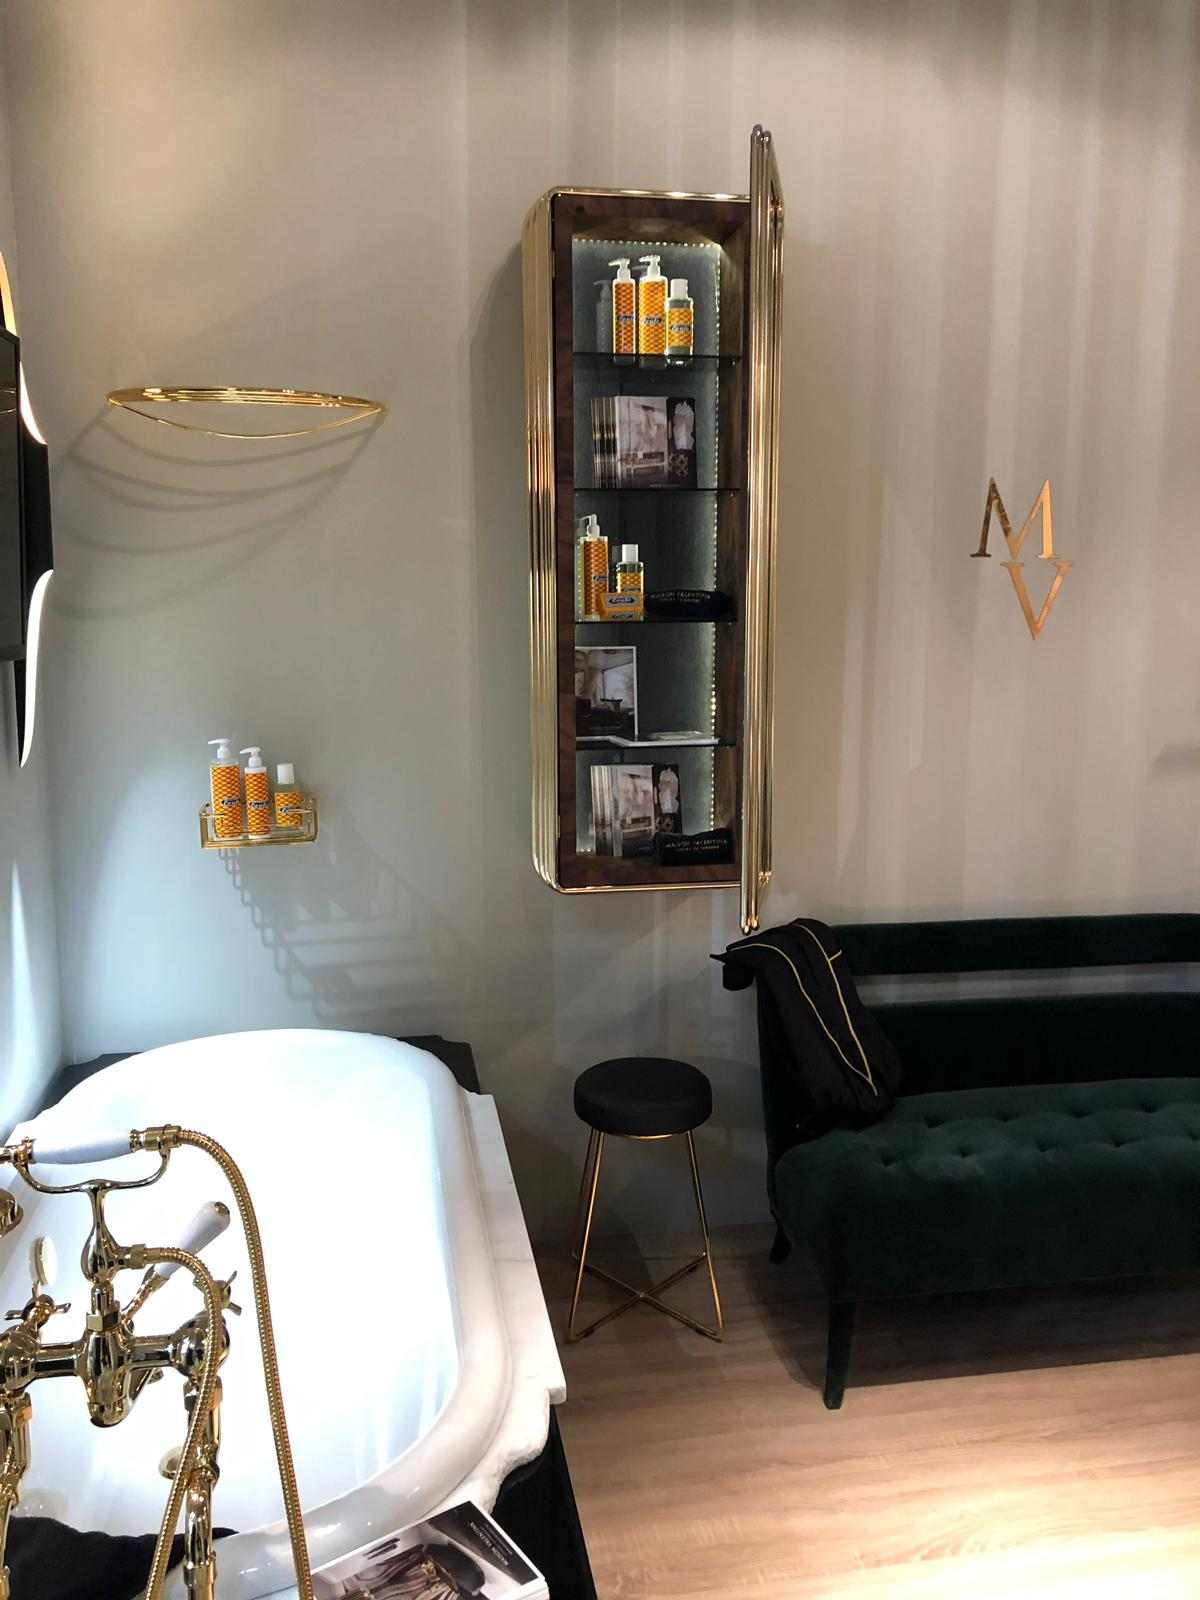 See Highlights from Maison Valentina's Stand at Maison et Objet 2019 (4) maison et objet See Highlights from Maison Valentina's Stand at Maison et Objet 2019 See Highlights from Maison Valentinas Stand at Maison et Objet 2019 4